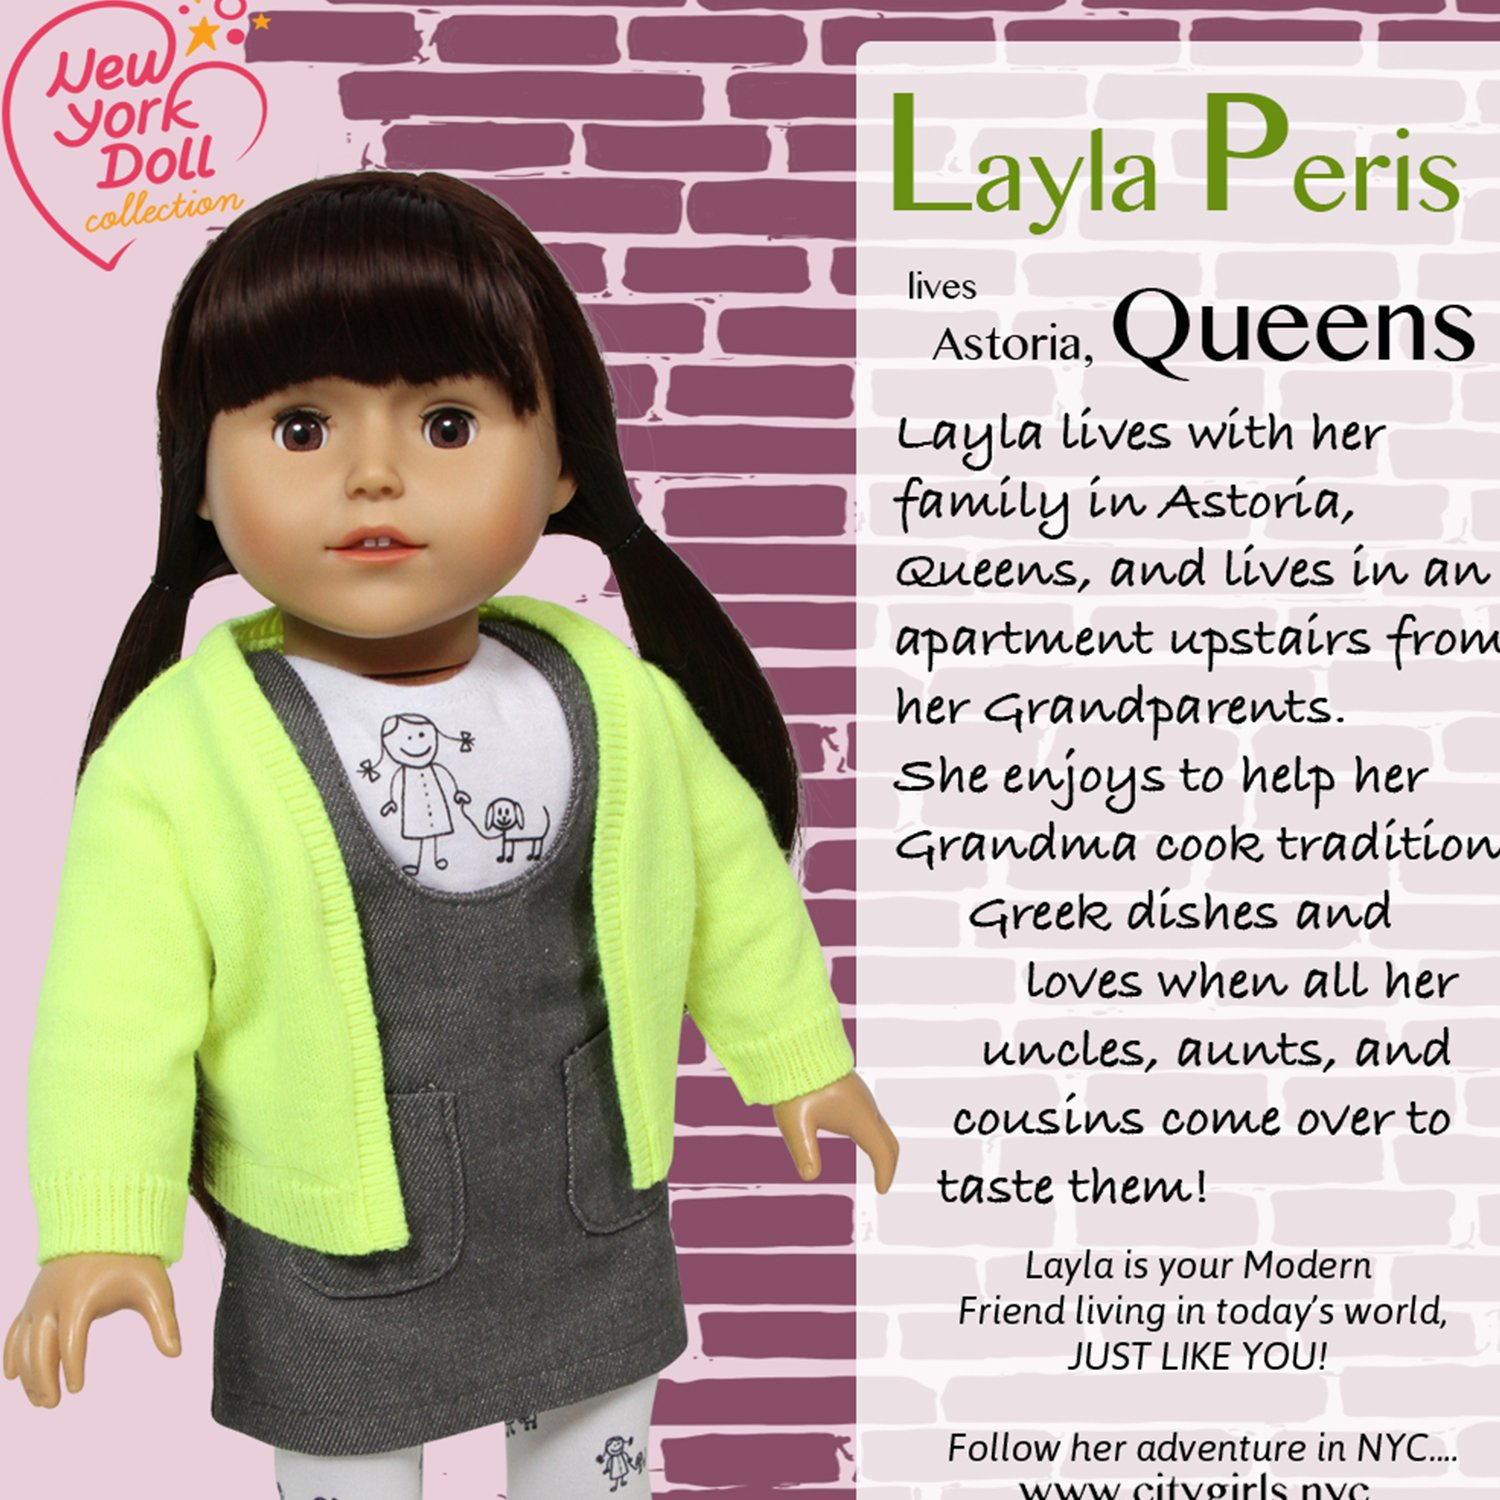 The New York Doll Collection City Girls 18 Inch Layla Amazon Free Patterns My Little Citygirl Toys Games